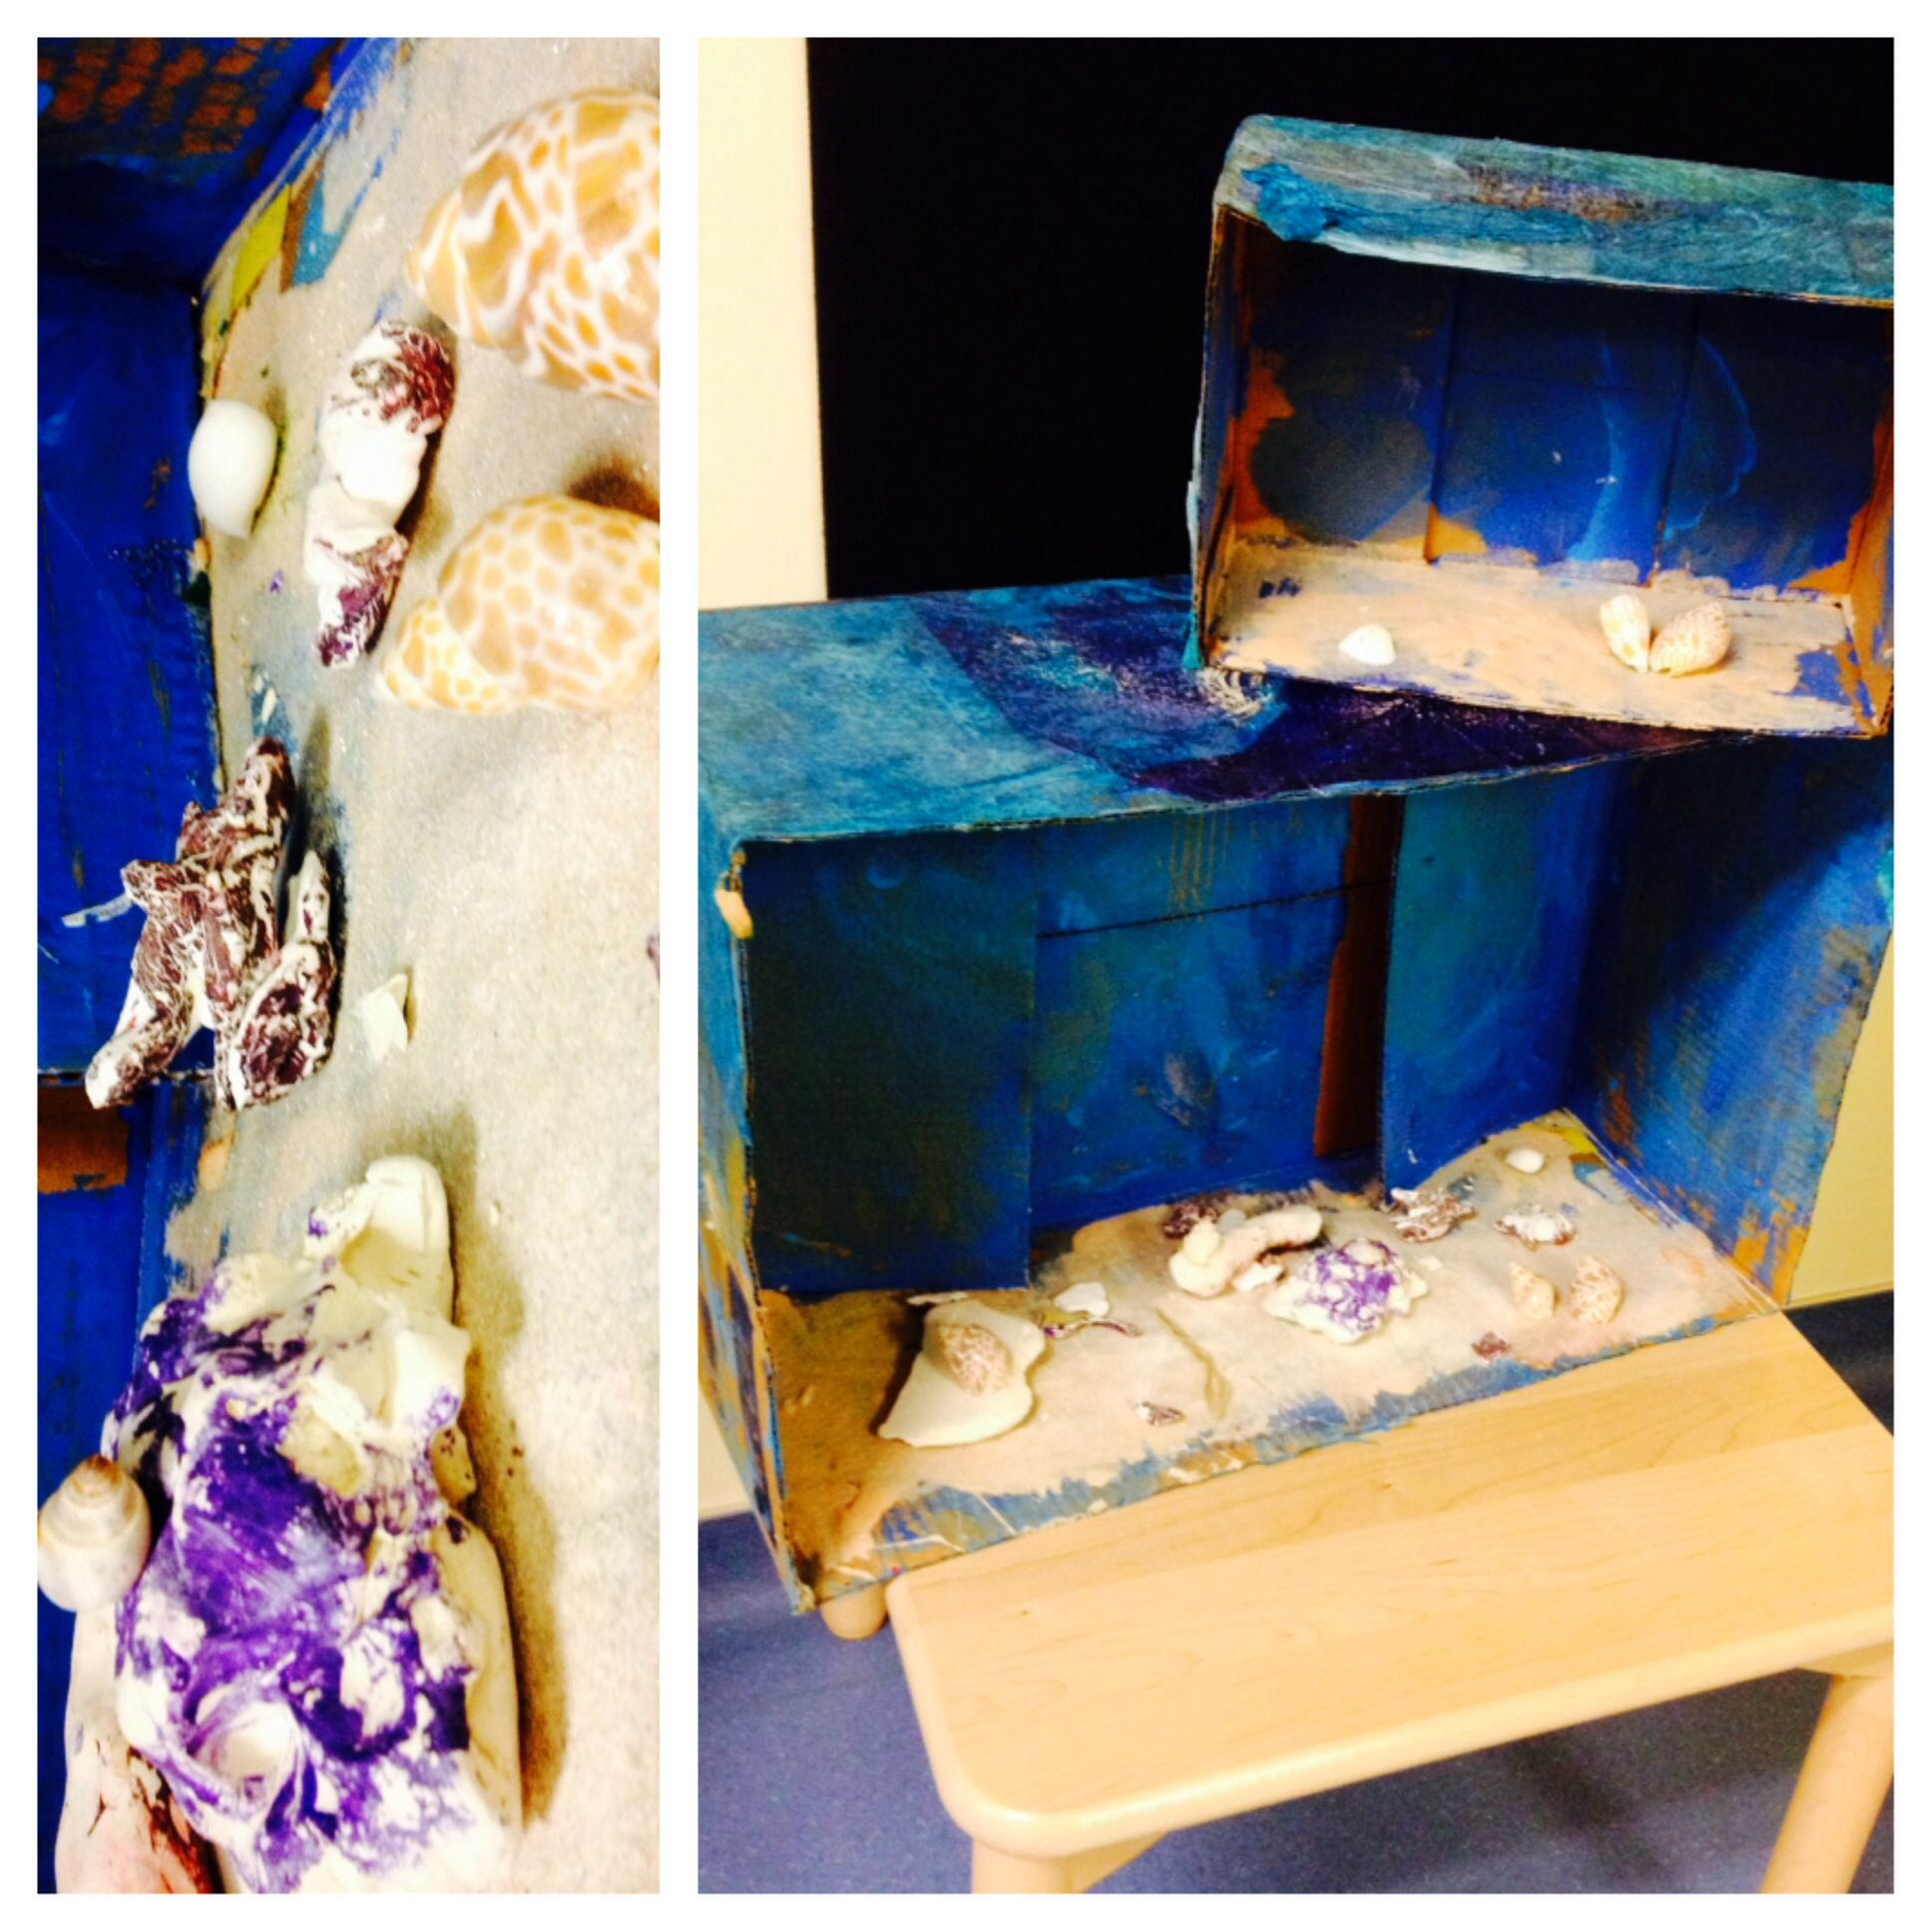 The Preschoolers Constructed An Underwater Water Ocean Scene By Painting Boxes And Molding Clay